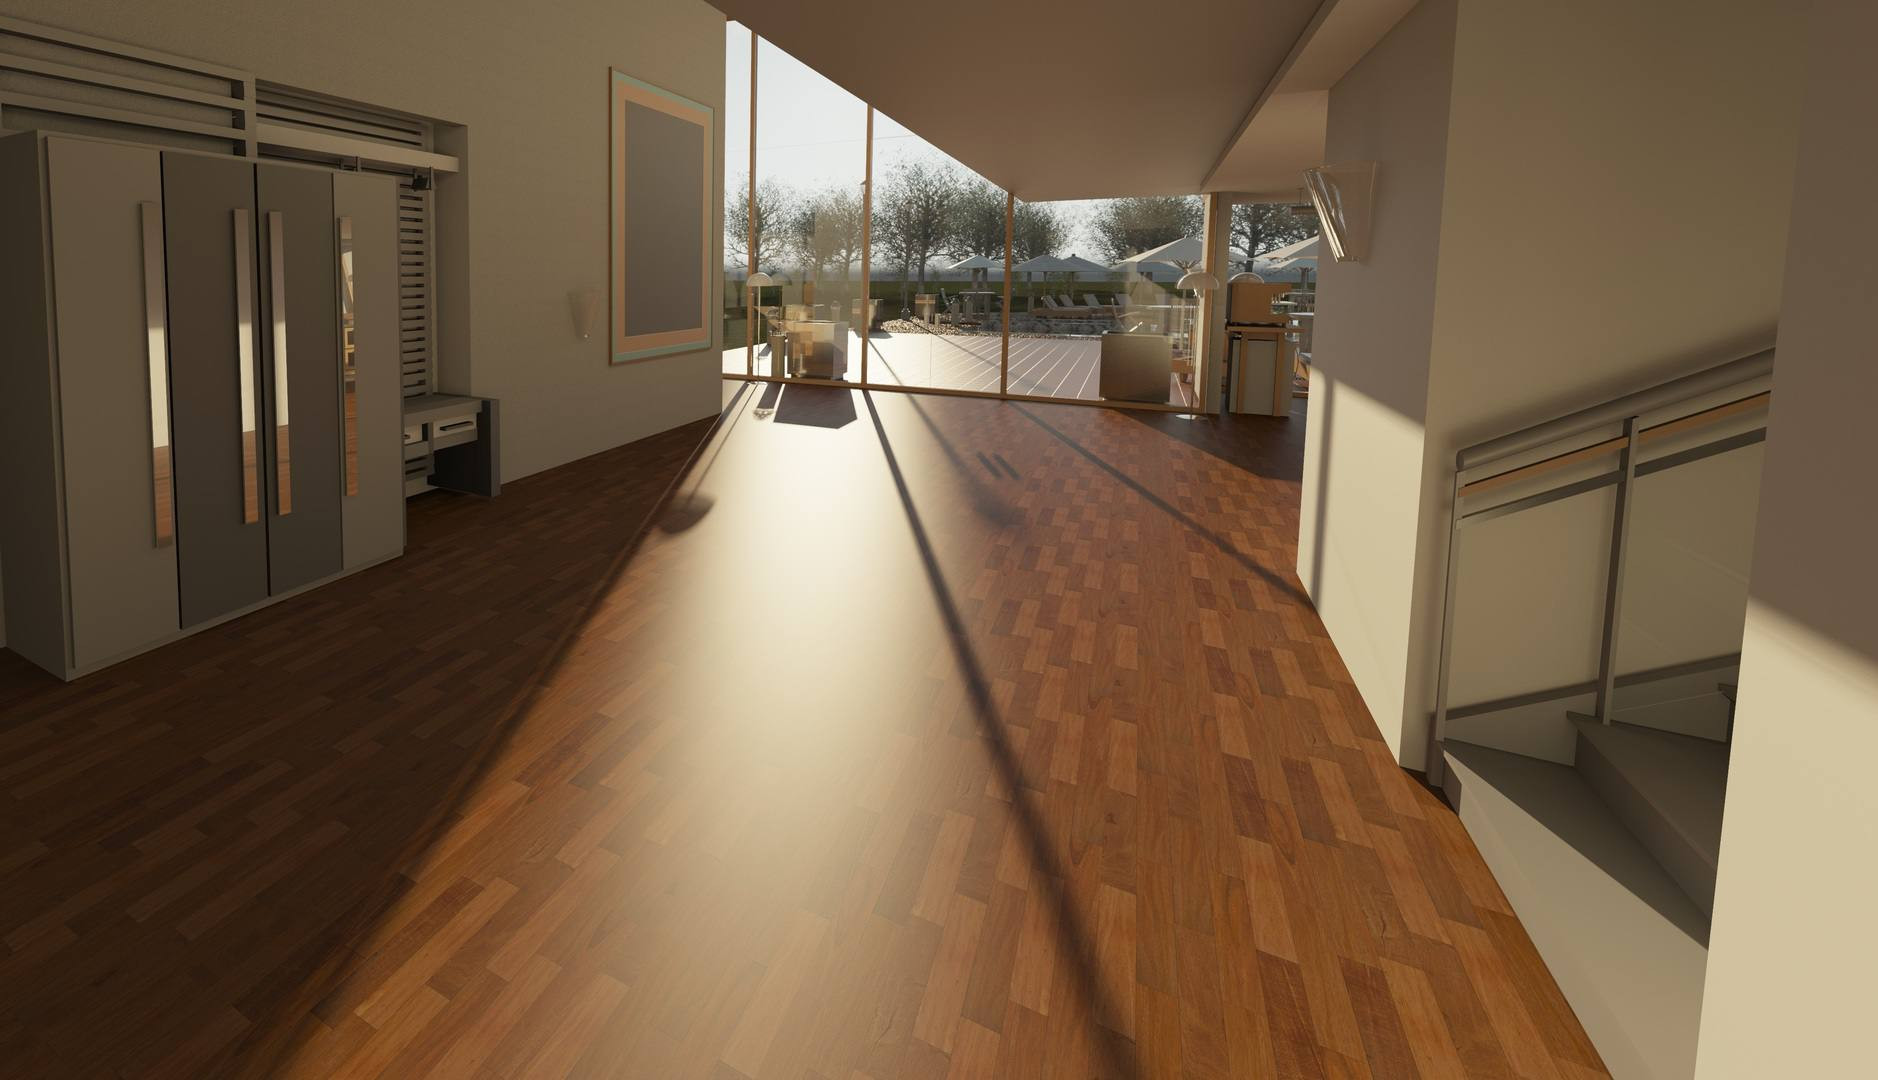 finishing new hardwood floors yourself of common flooring types currently used in renovation and building within architecture wood house floor interior window 917178 pxhere com 5ba27a2cc9e77c00503b27b9